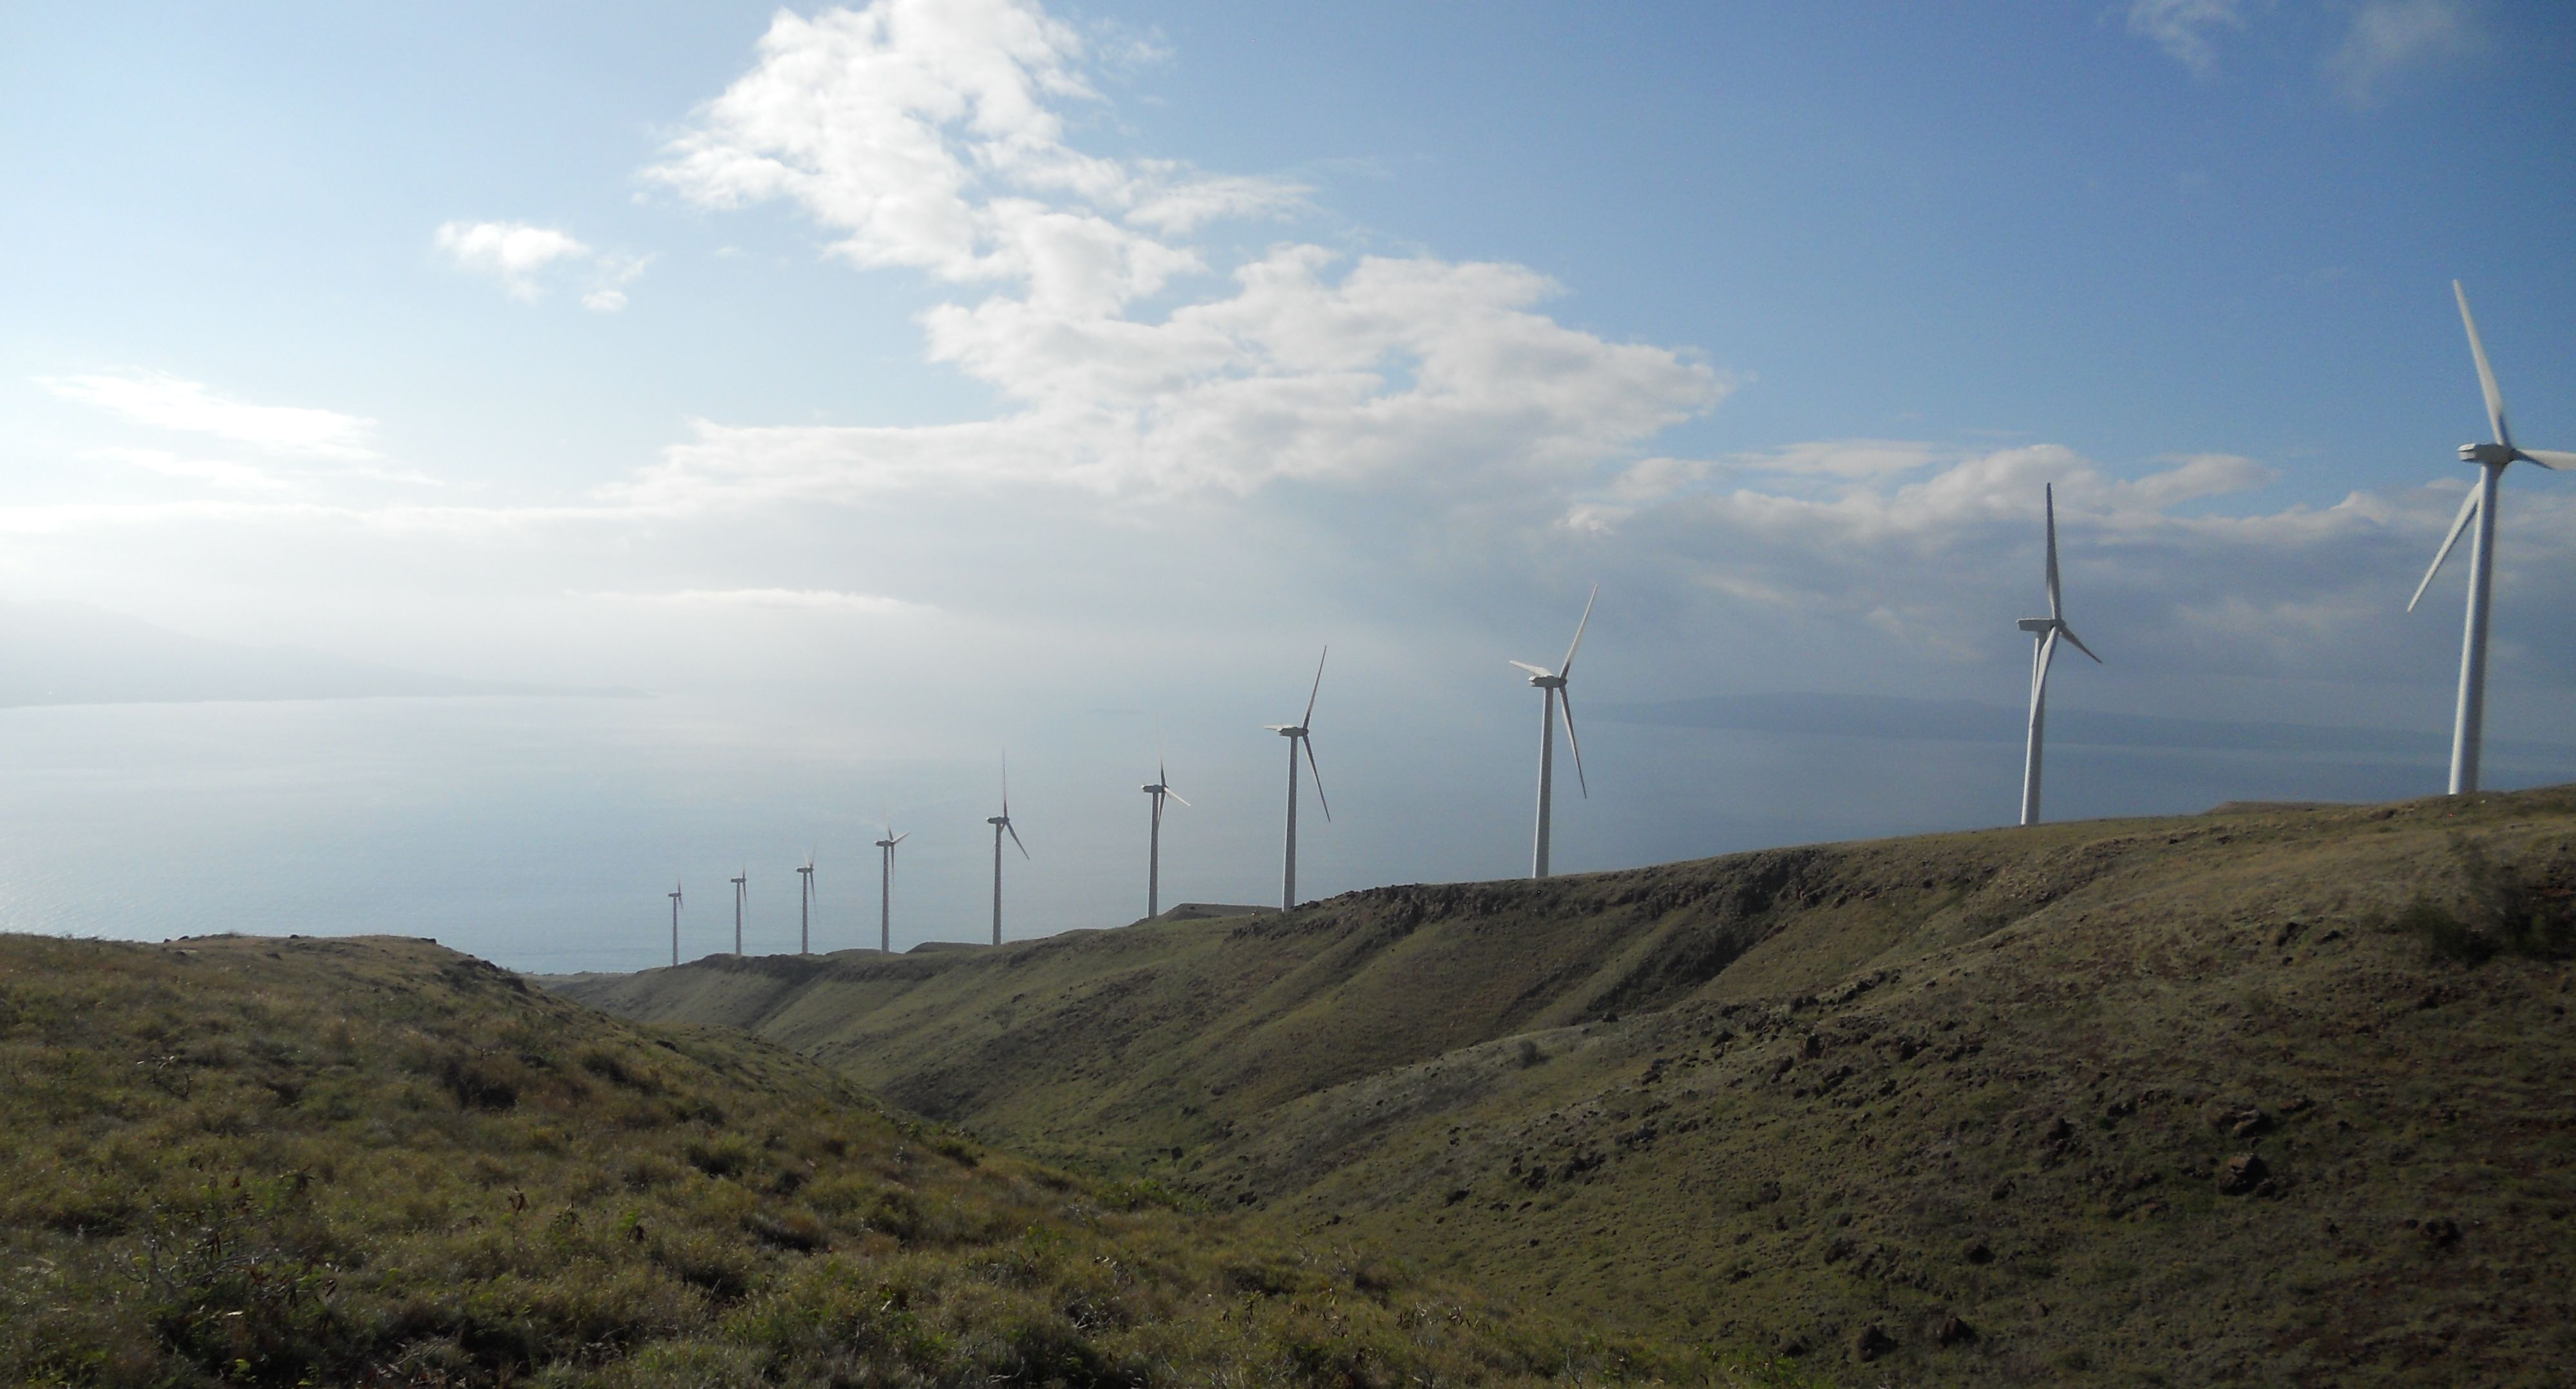 My deep breath powered sixteen homes in Maui today. #Green